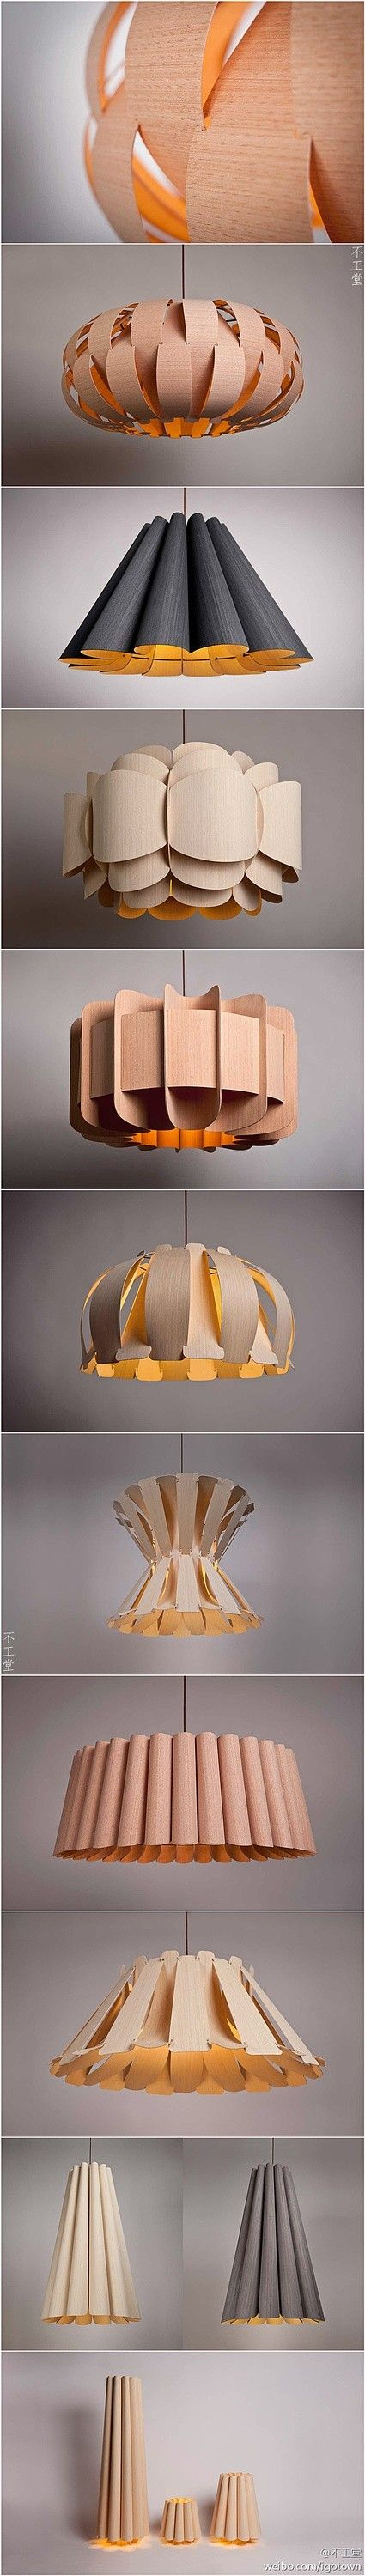 Contemporary Wood Chandeliers